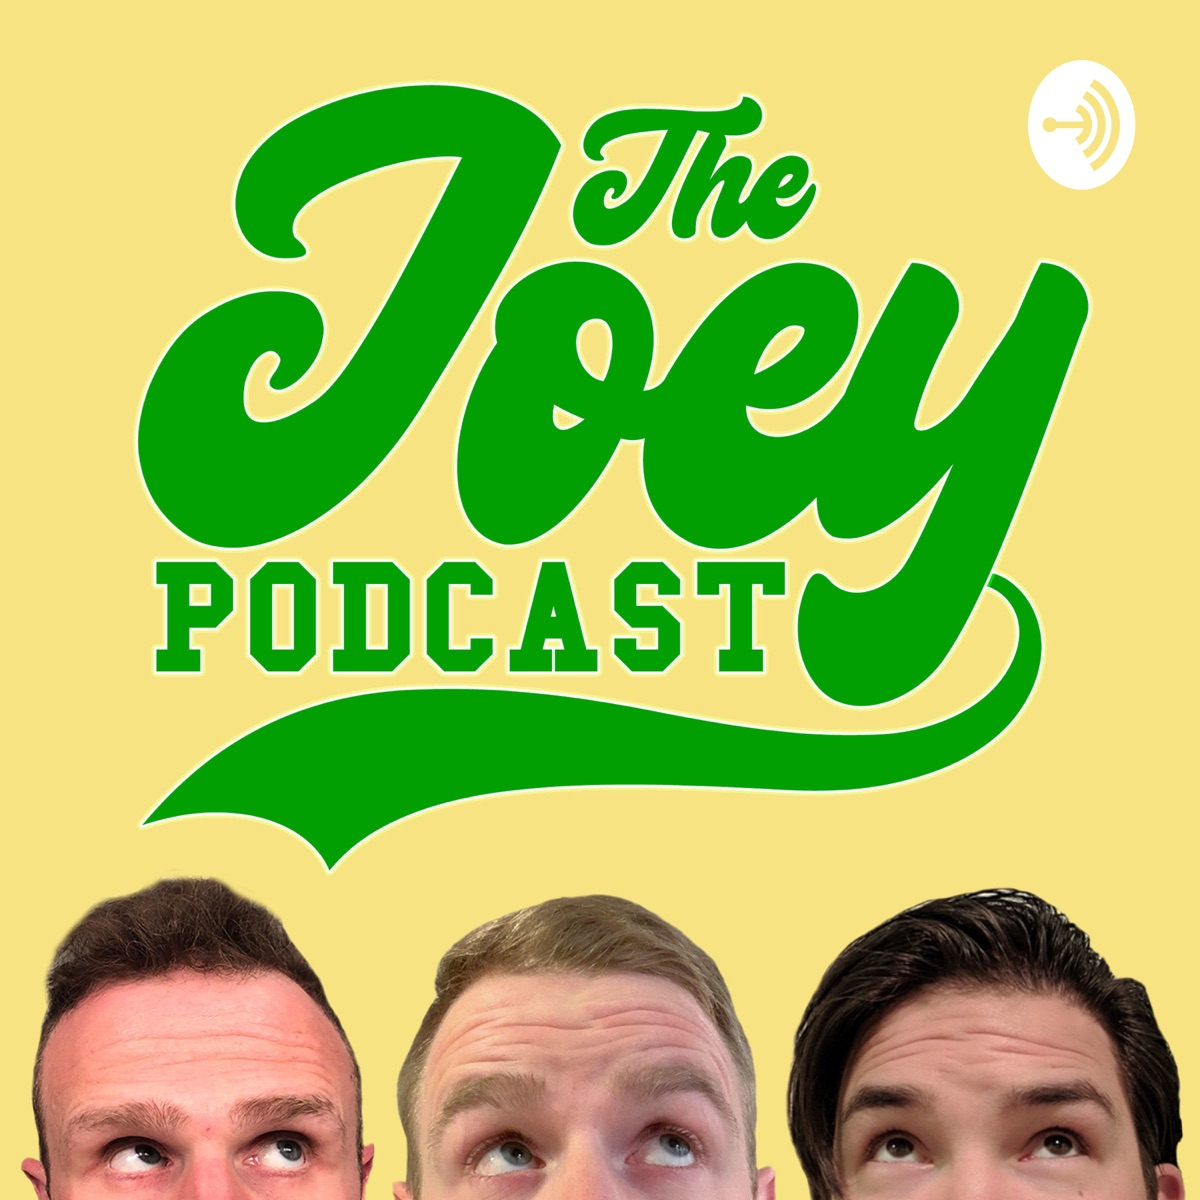 The Joey Mountain Bike Podcast